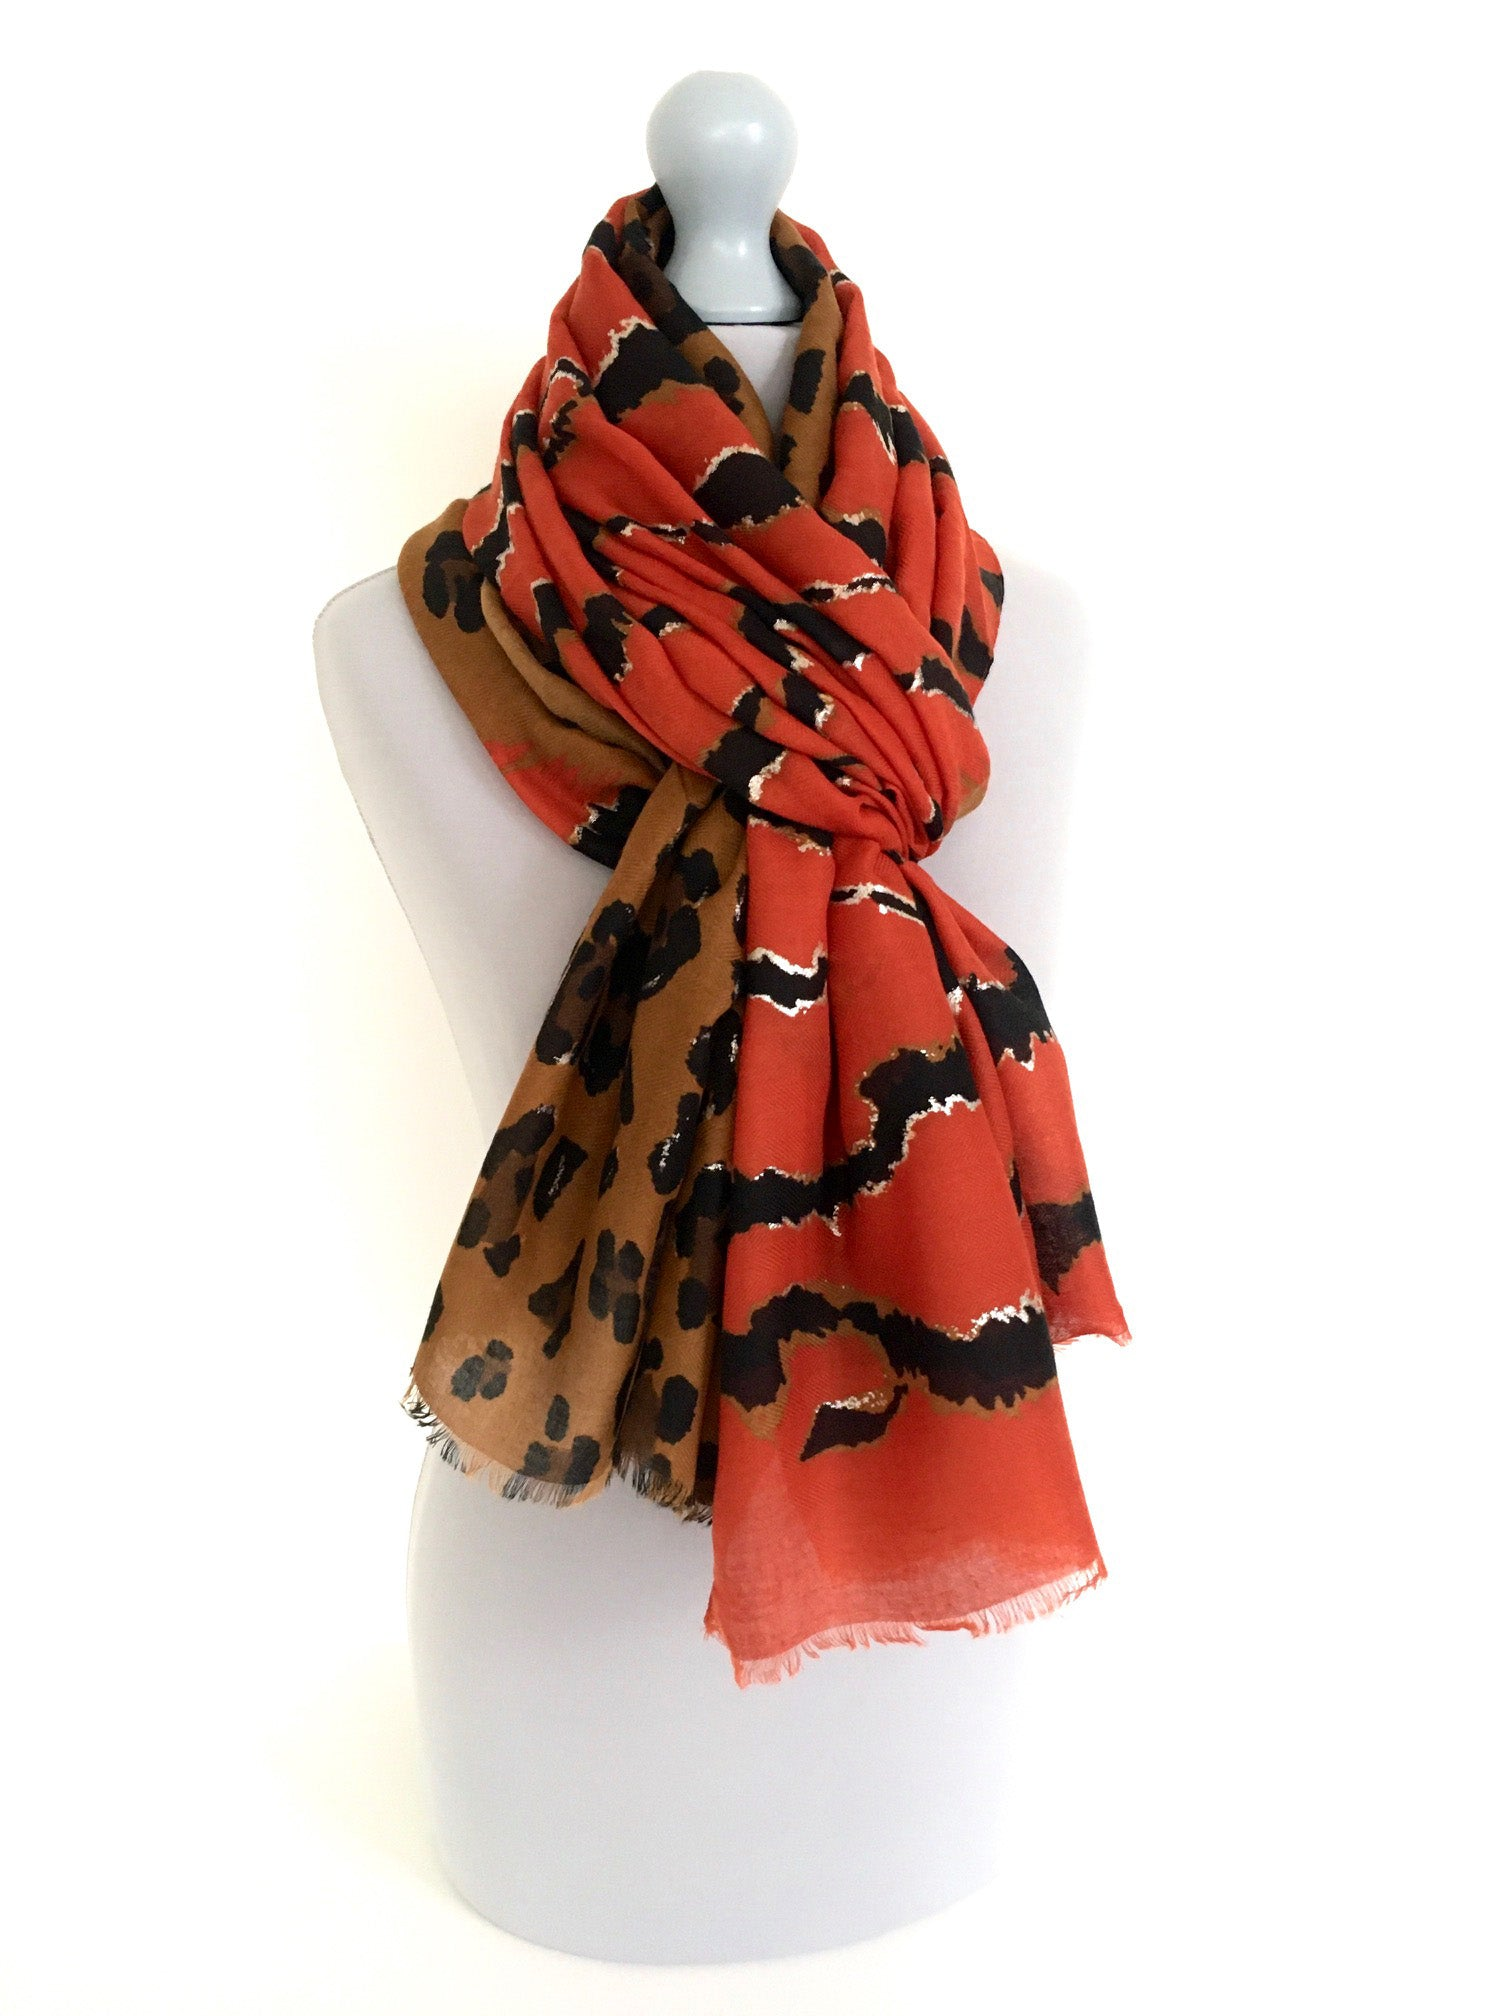 A-SHU LARGE DEEP ORANGE ZEBRA AND LEOPARD PRINT SHAWL SCARF - A-SHU.CO.UK